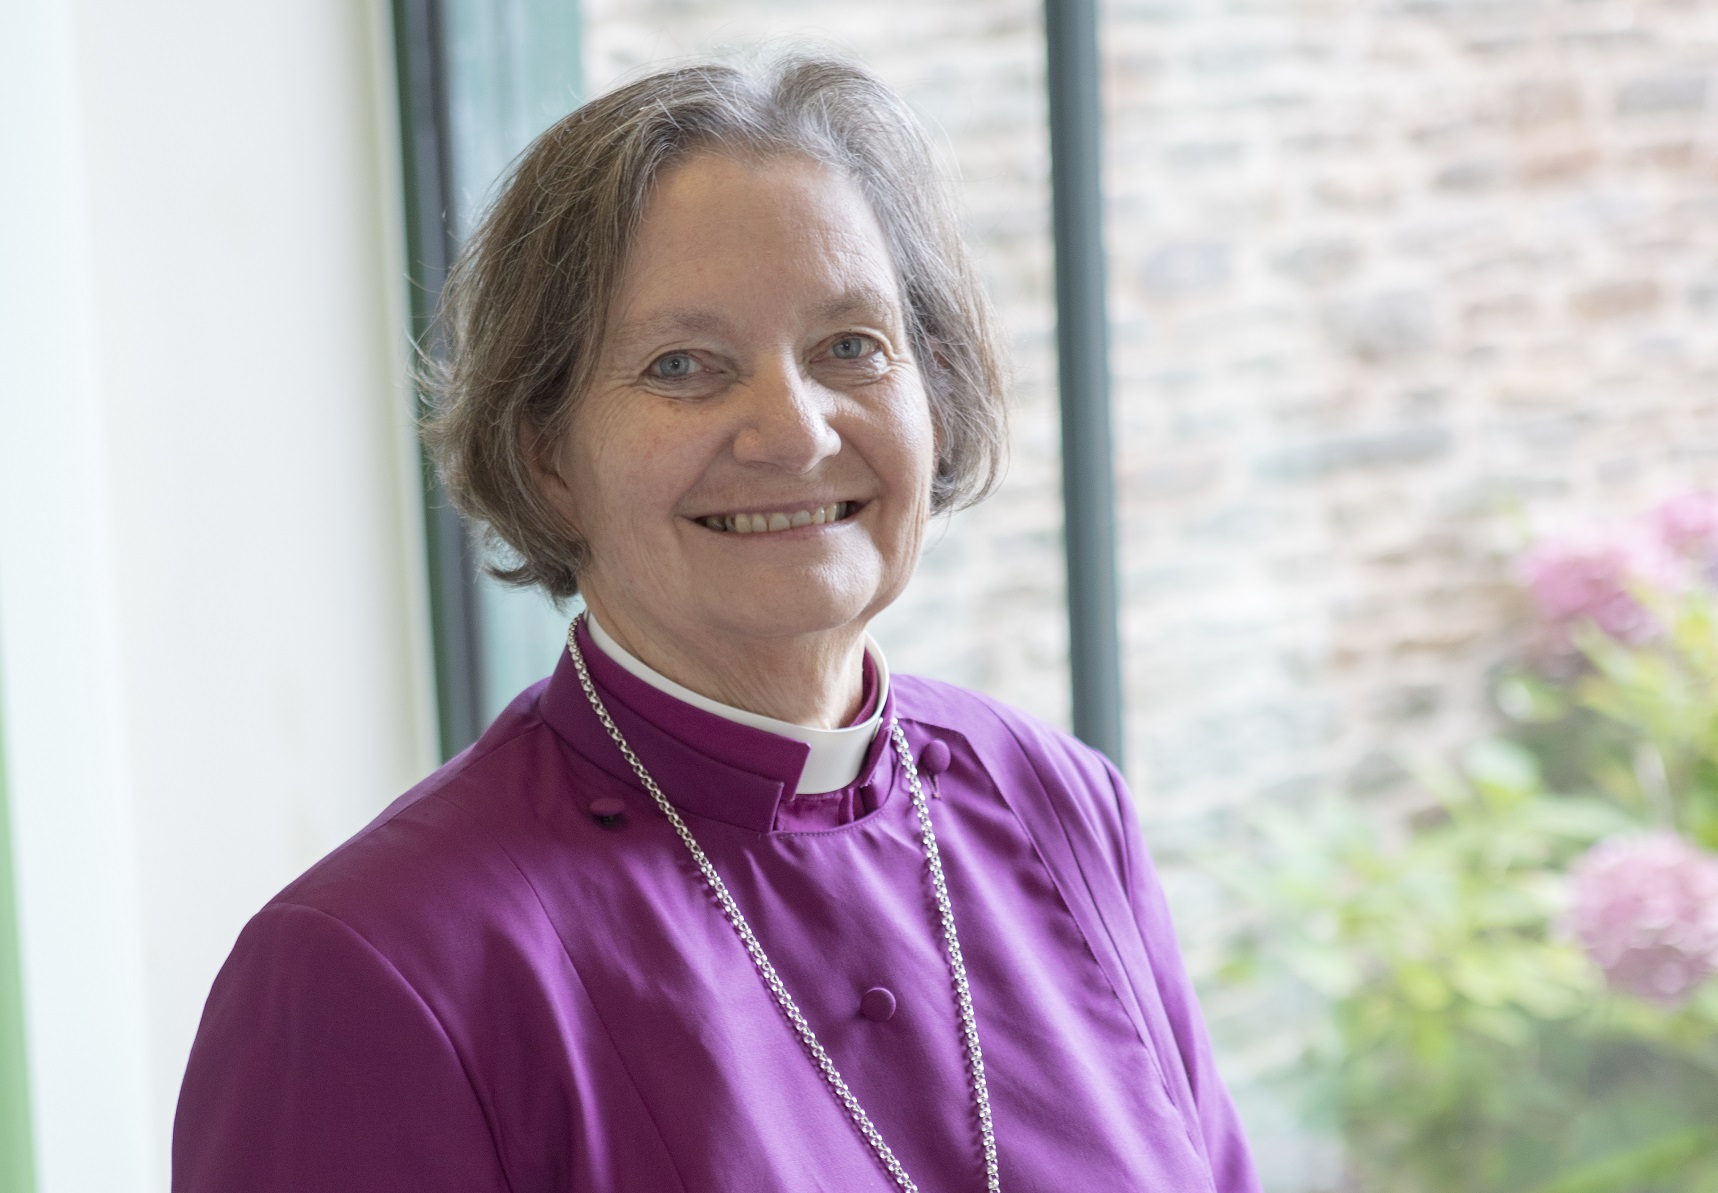 Open  Bishop of Bristol makes first speech in House of Lords